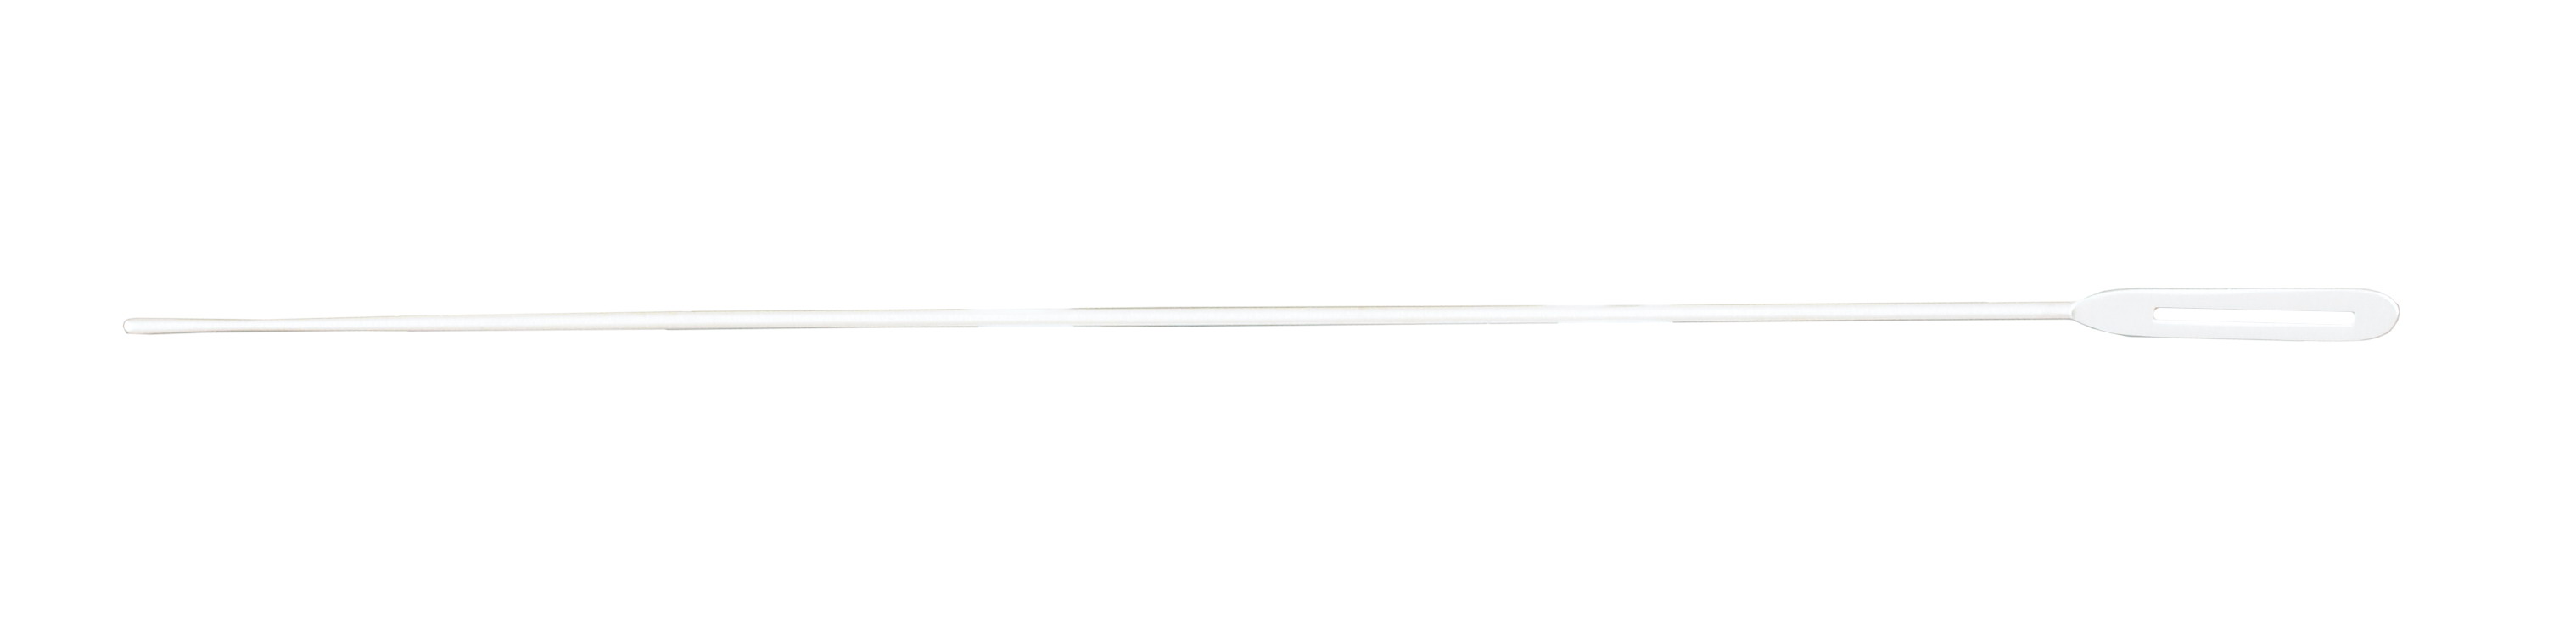 miltex-probes-with-eye-malleable-8-203-cm-sterling-10-32-st-miltex.jpg